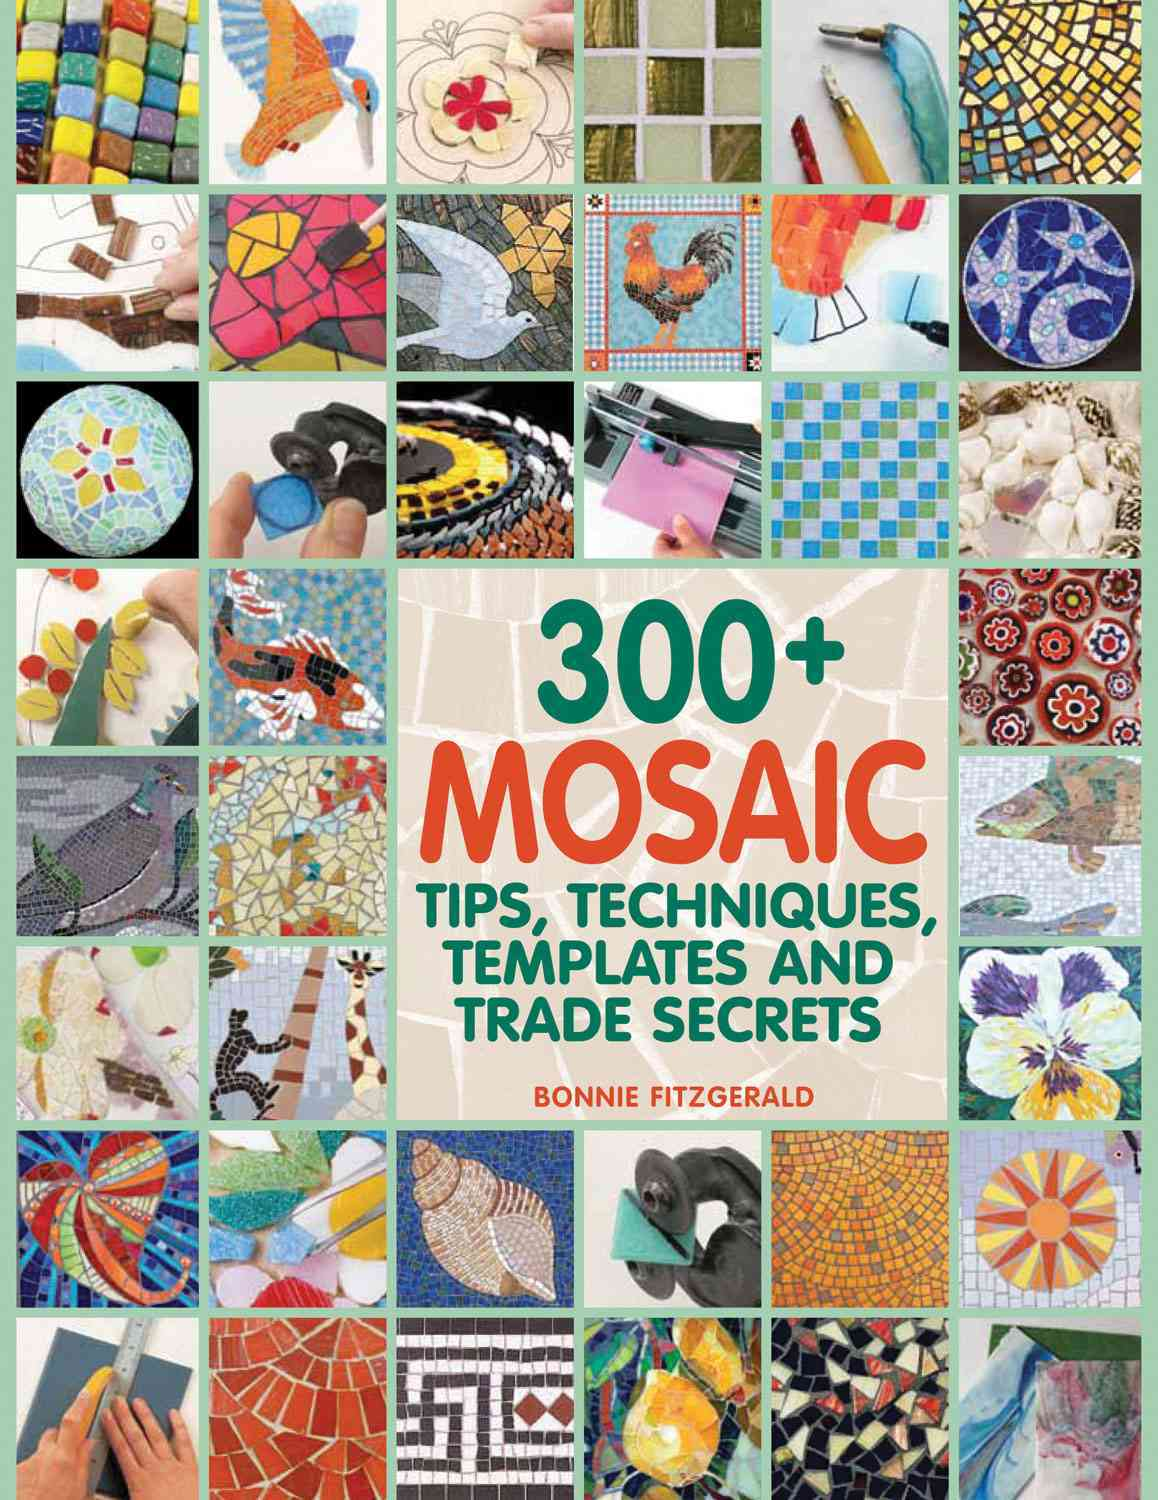 300+ Mosaic Tips, Techniques, Templates and Trade Secrets By Fitzgerald, Bonnie